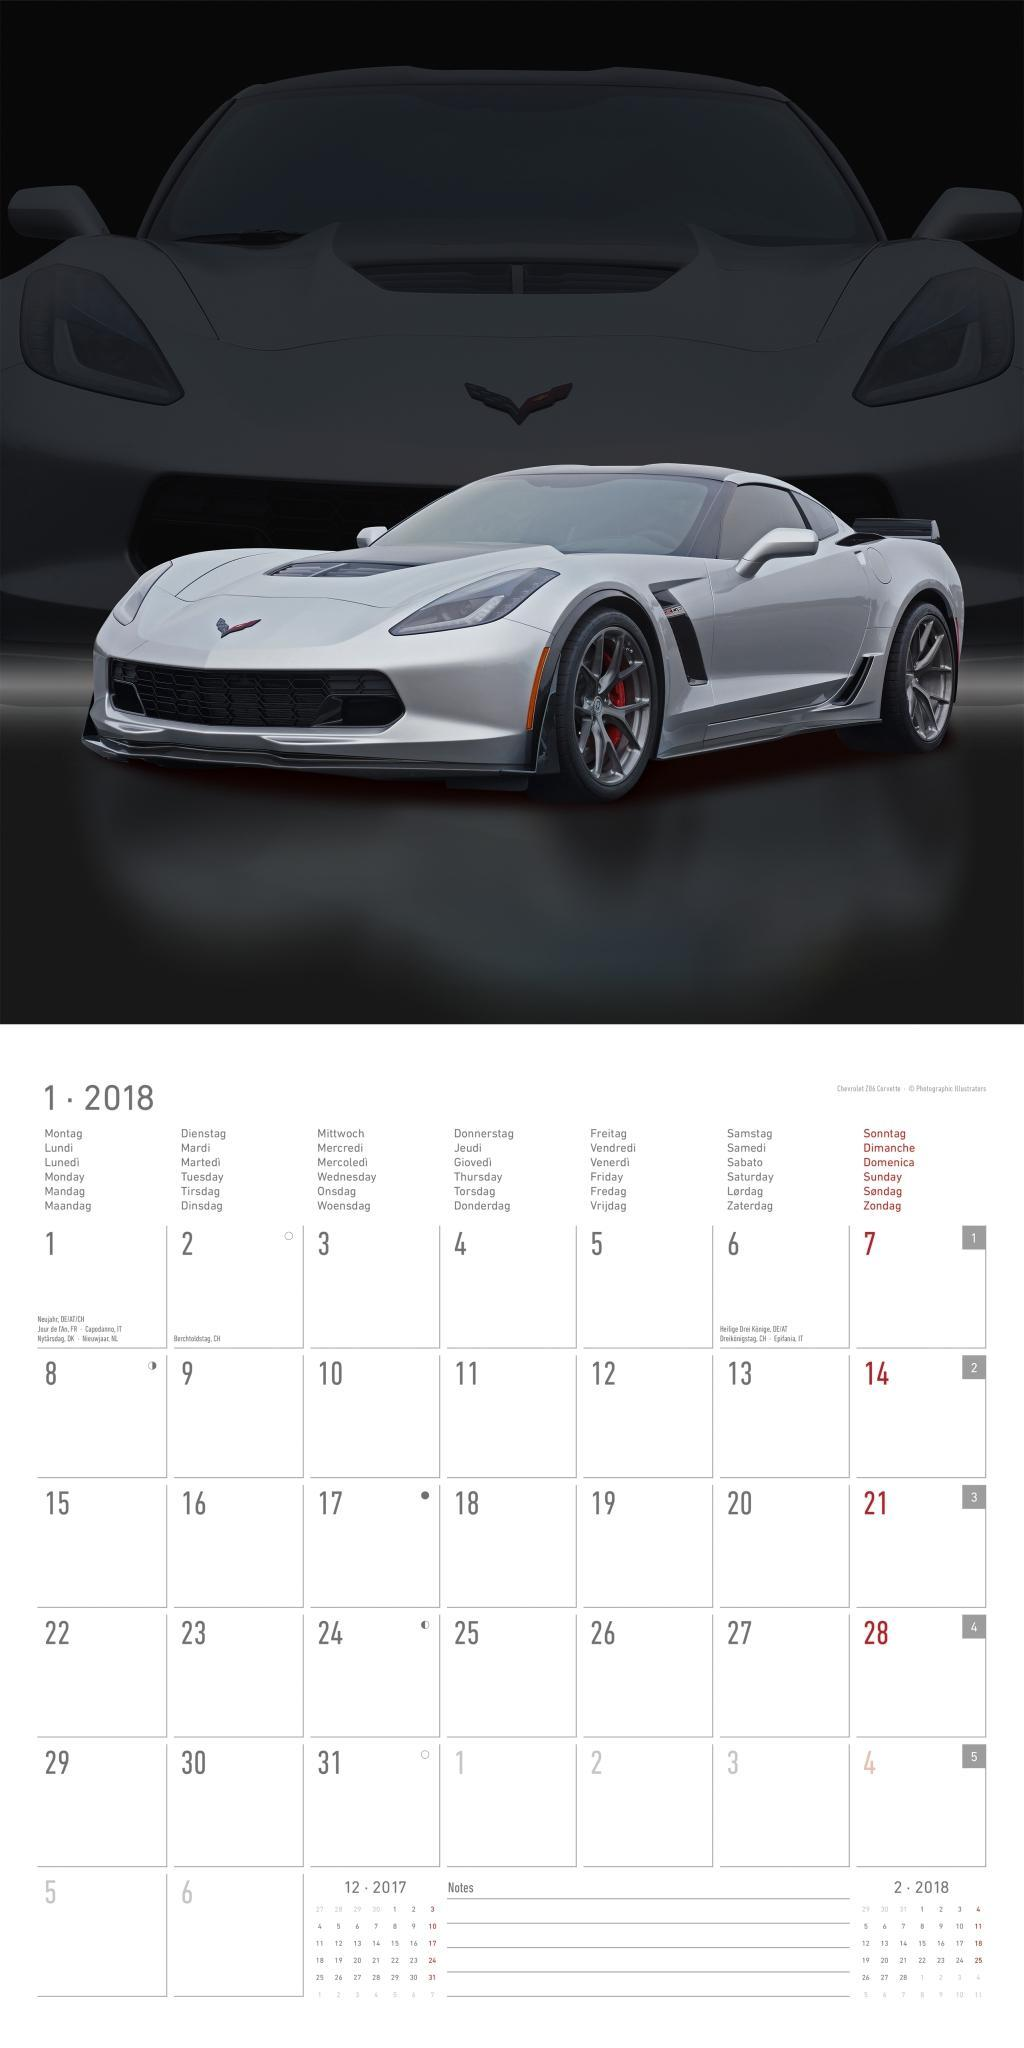 kalender 2018 sports cars 2018 auto kalender verkehr. Black Bedroom Furniture Sets. Home Design Ideas